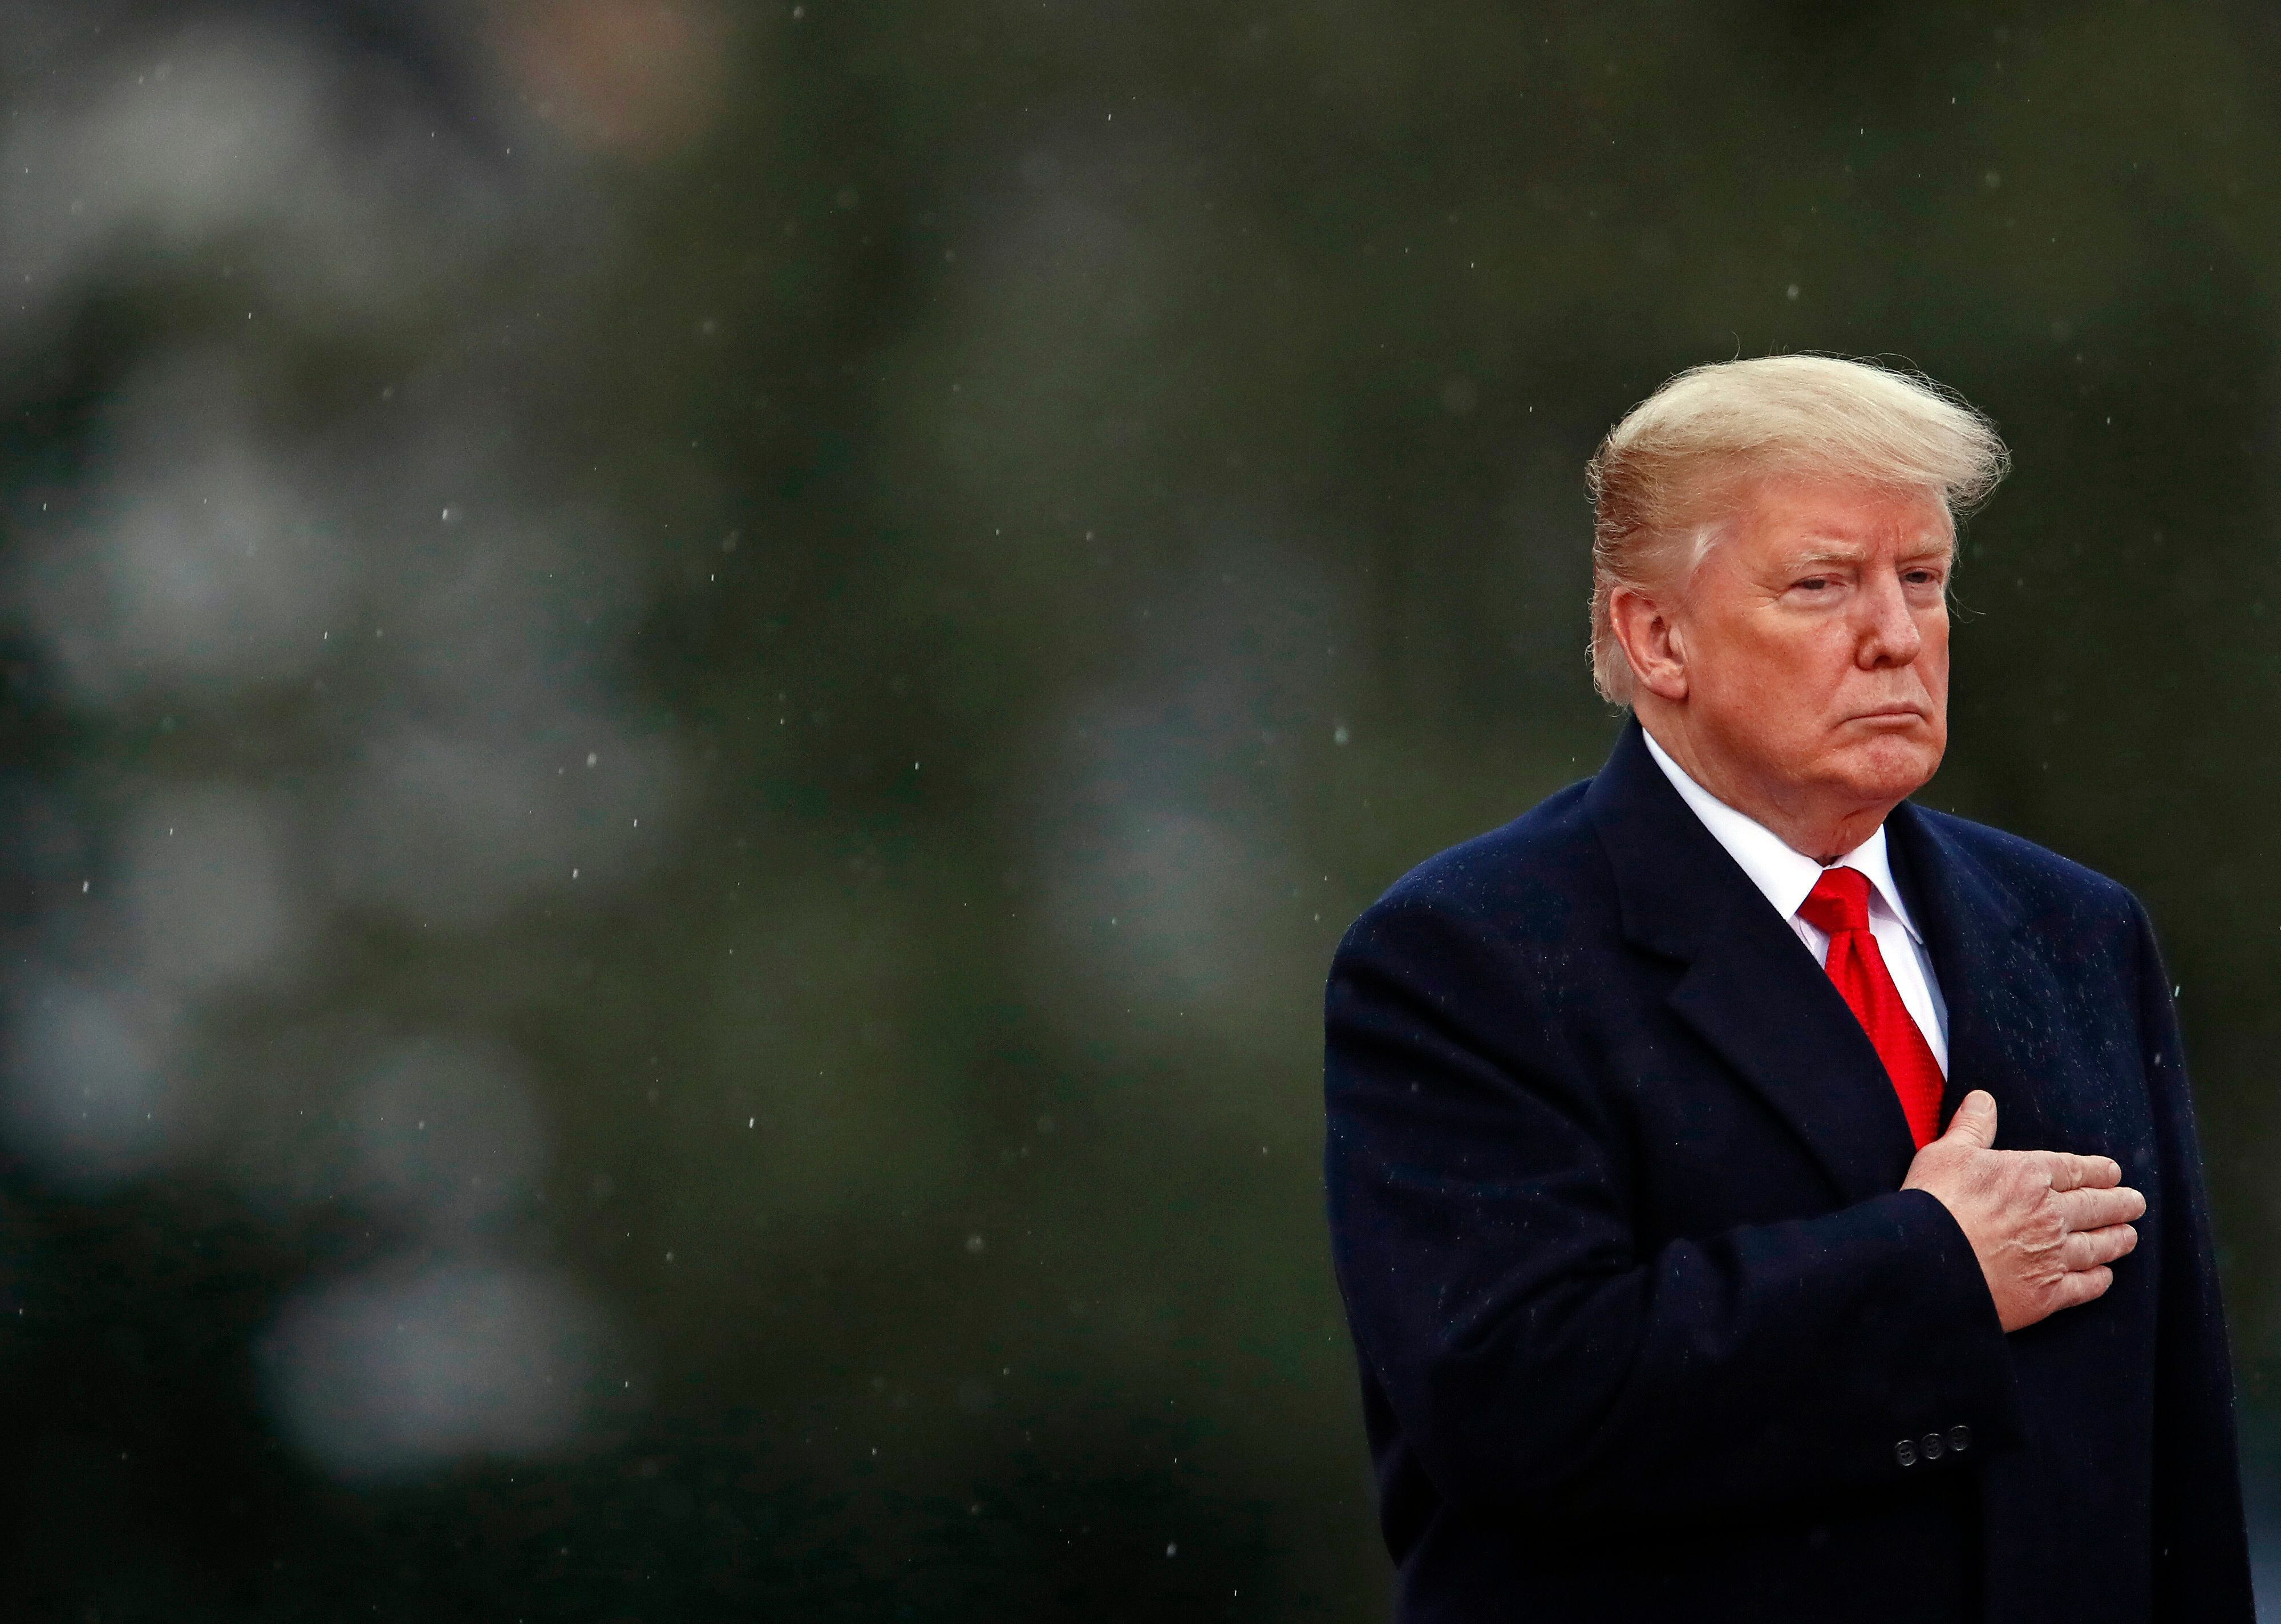 U.S. President Donald Trump visits the Suresnes American Cemetery, near Paris, as part of the Paris commemoration ceremony for Armistice Day, 100 years after the end of the First World War, France, Sunday, Nov. 11, 2018. (Christian Hartmann/Pool Photo via AP)